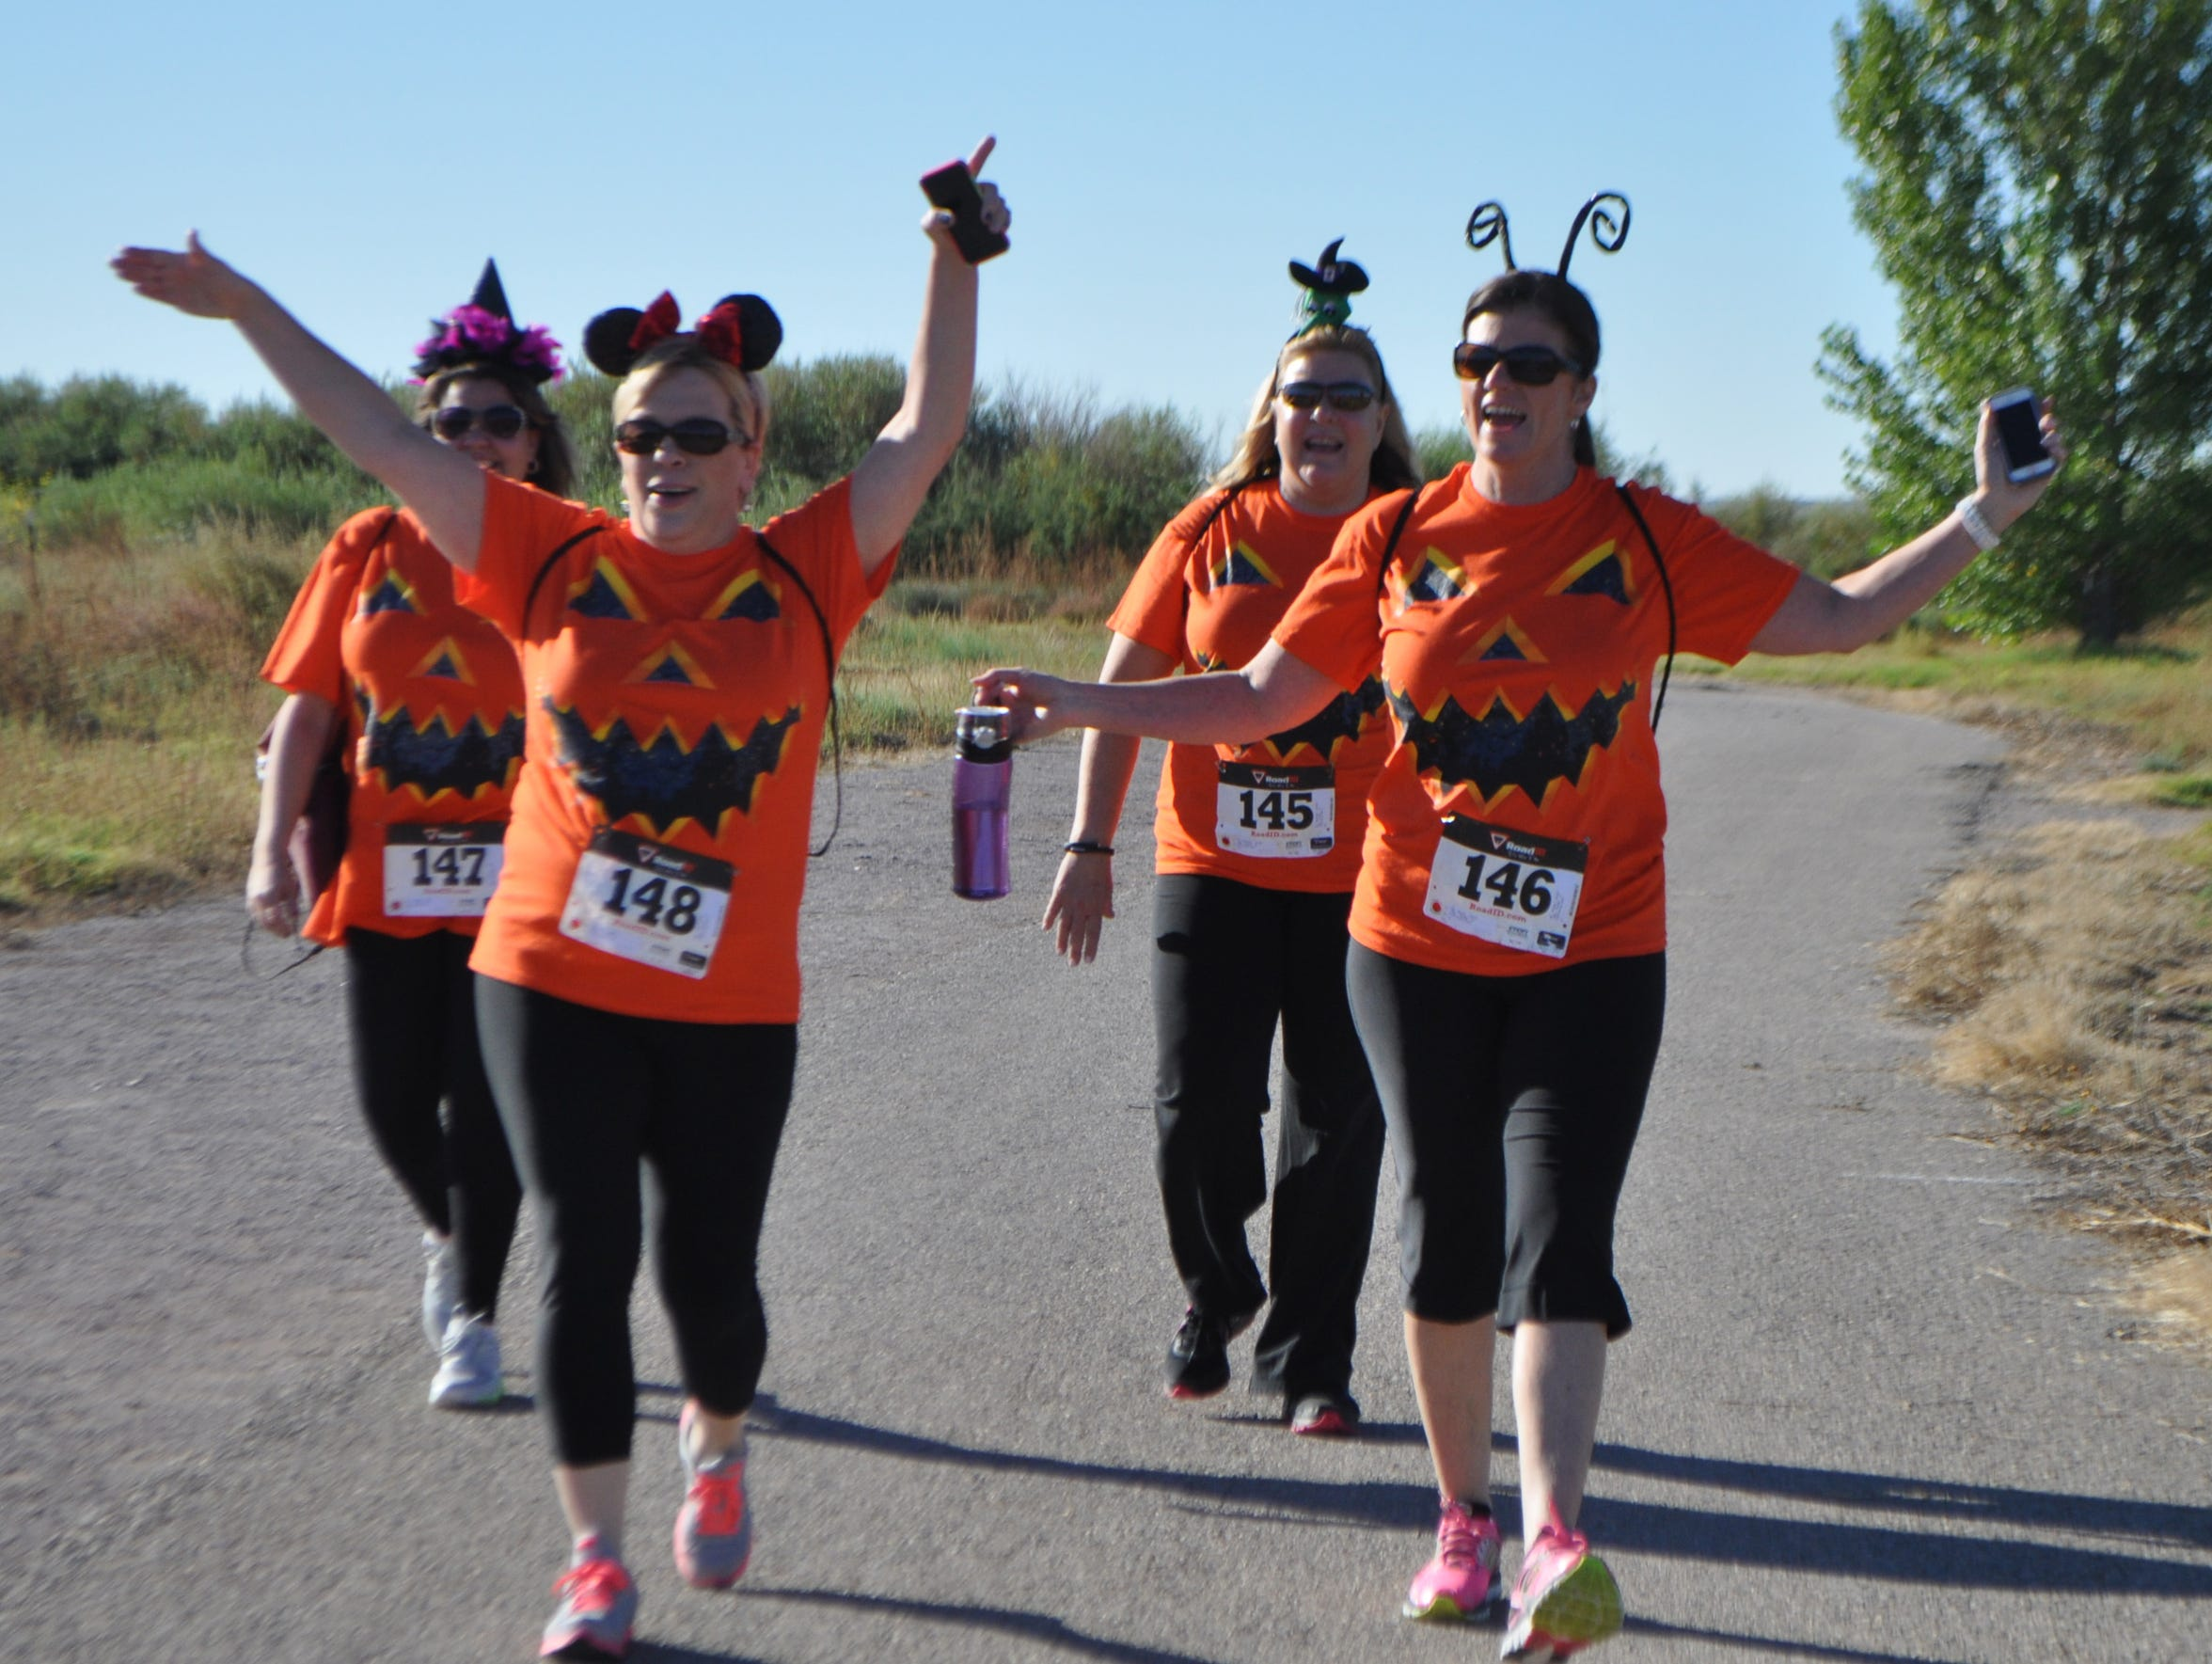 Participants sport their Halloween spirit as they walk